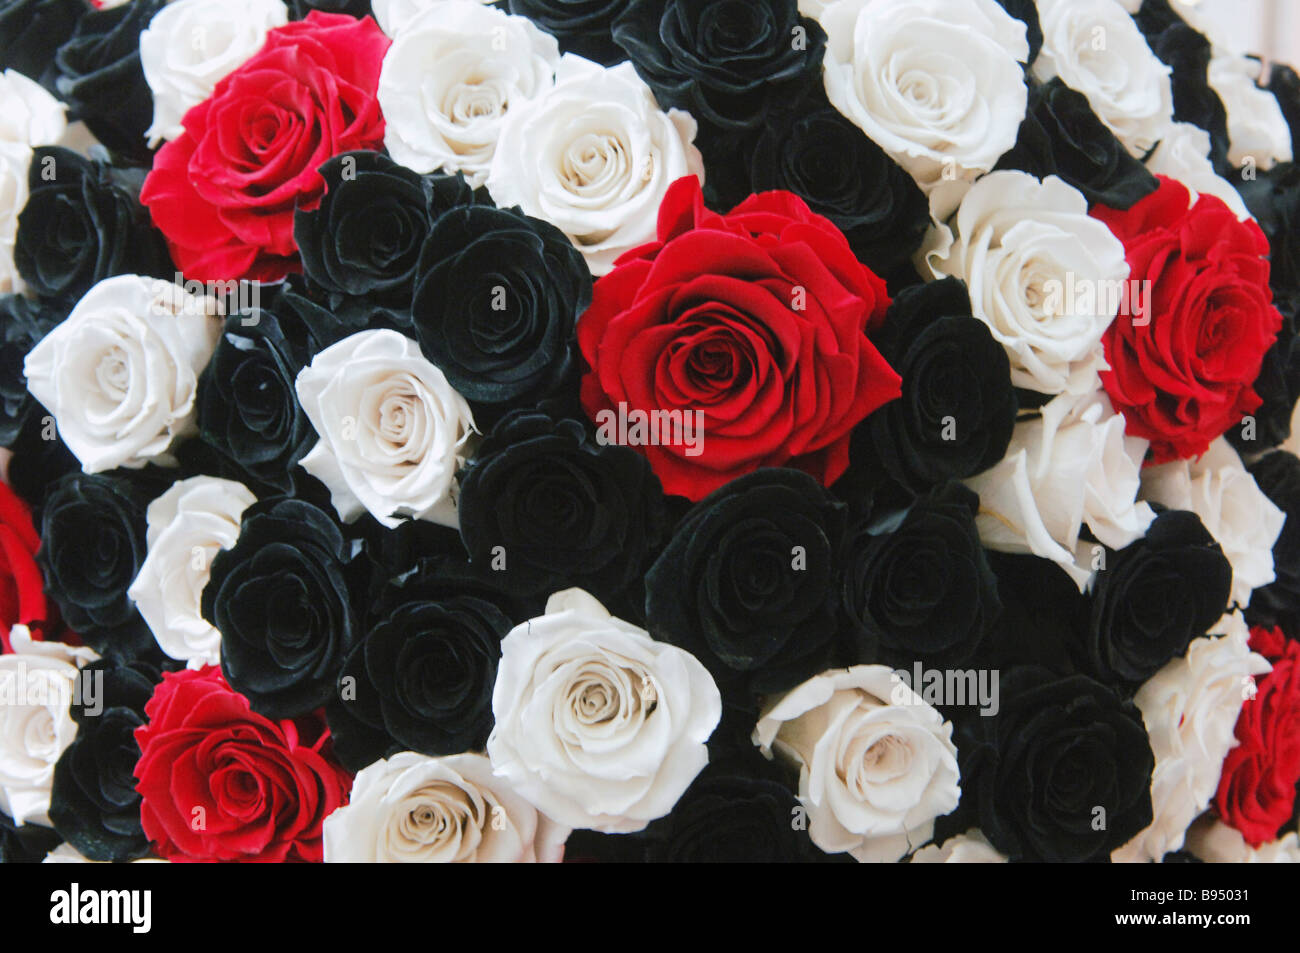 A Bouquet Of Red White And Black Roses Put On Display At The Flowers